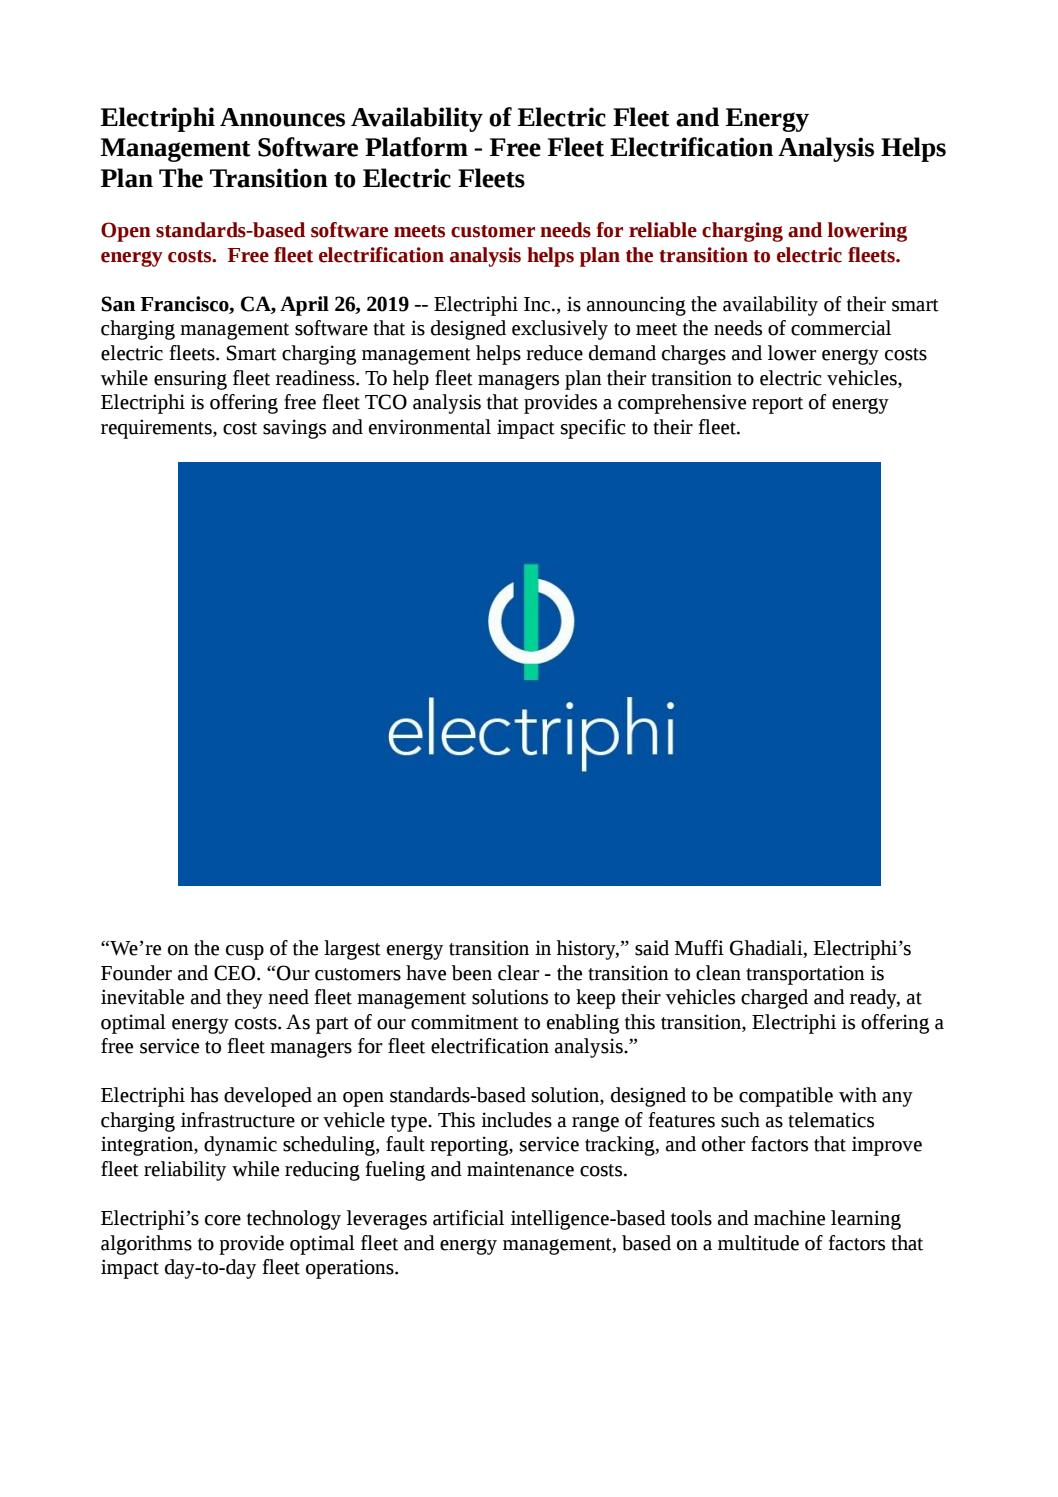 Electriphi Announces Availability of Electric Fleet and